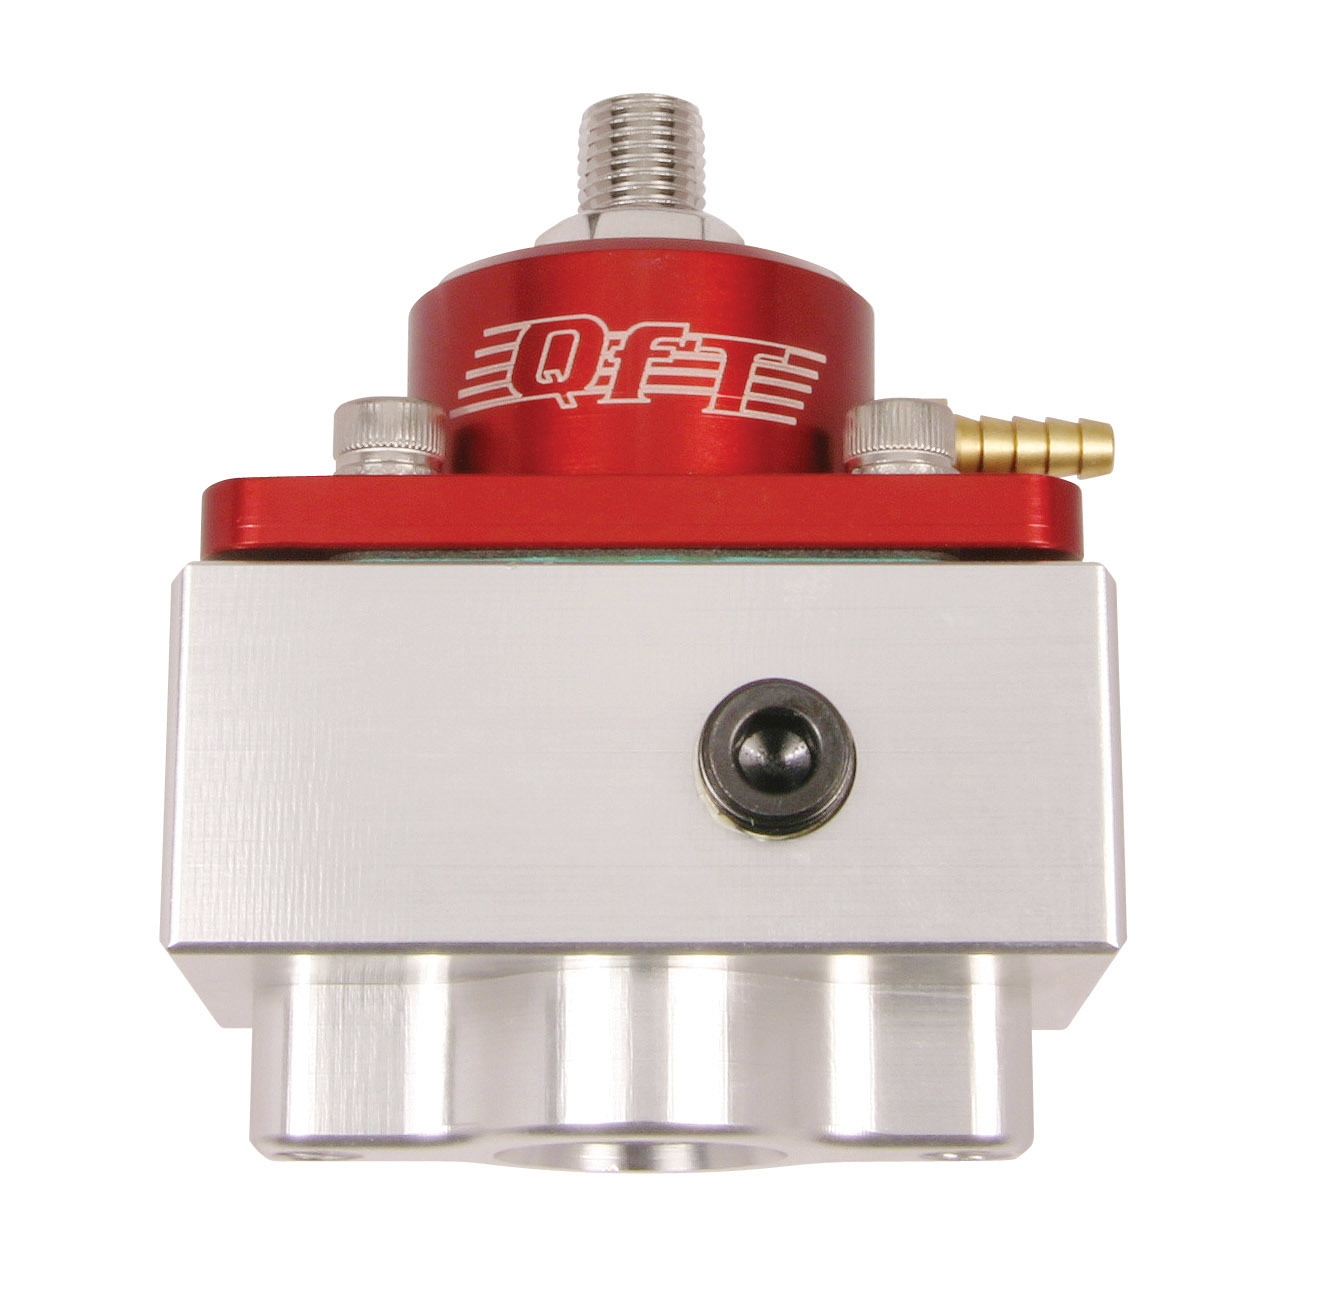 Quick Fuel 30-1900 Fuel Pressure Regulator, 4-1/2 to 9 psi, In-Line, 8 AN Female O-Ring Inlet, 8 AN Female O-Ring Outlet, 8 AN Female O-Ring Return, Bypass, 1/8 in NPT Port, Aluminum, Red / Clear Anodized, E85 / Gas / Methanol, Each